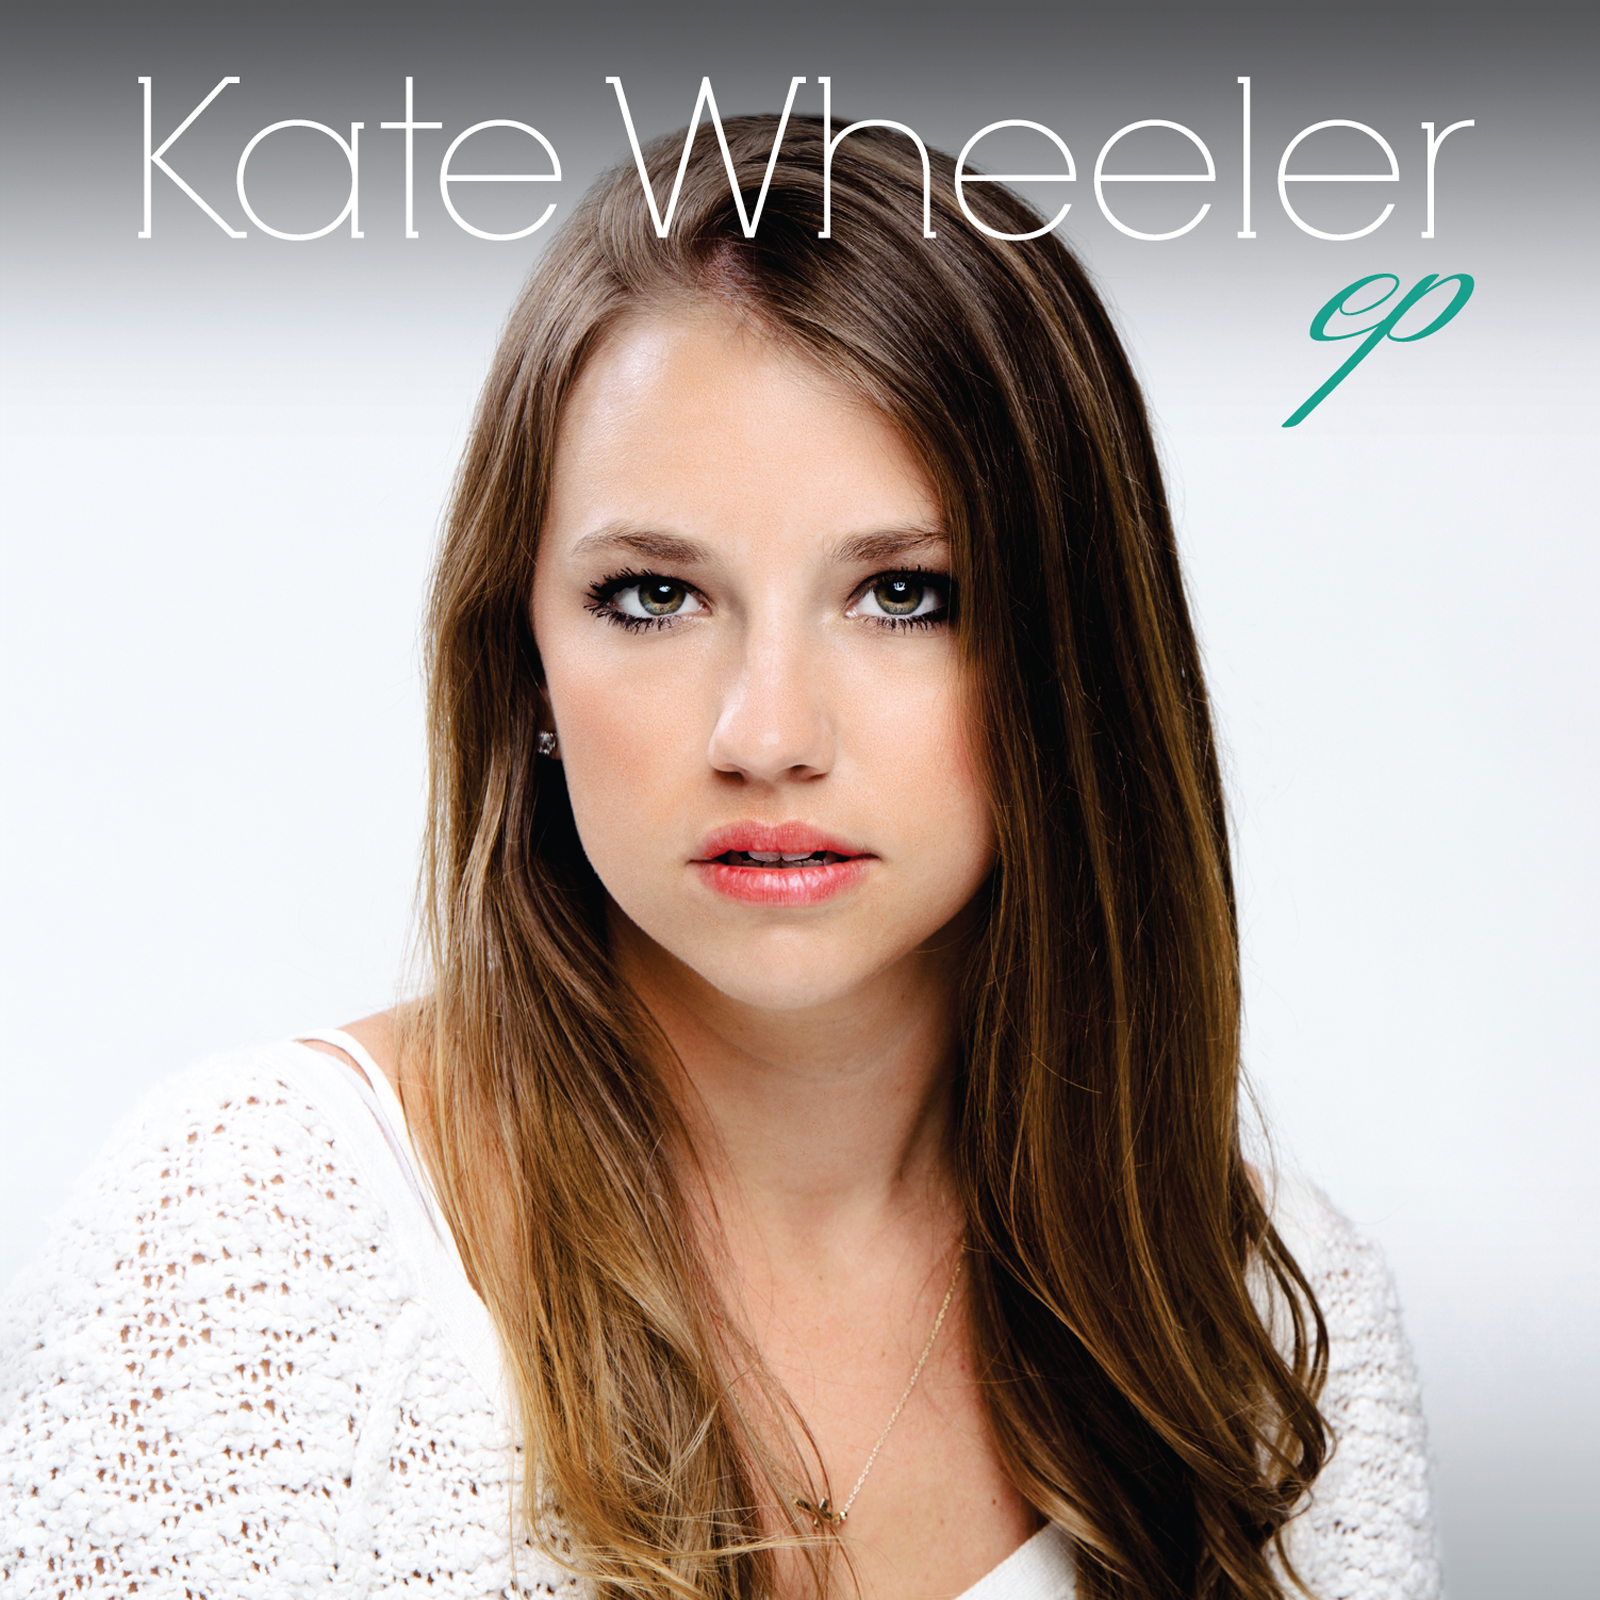 Kate-Wheeler-Cover-iTunes.jpg